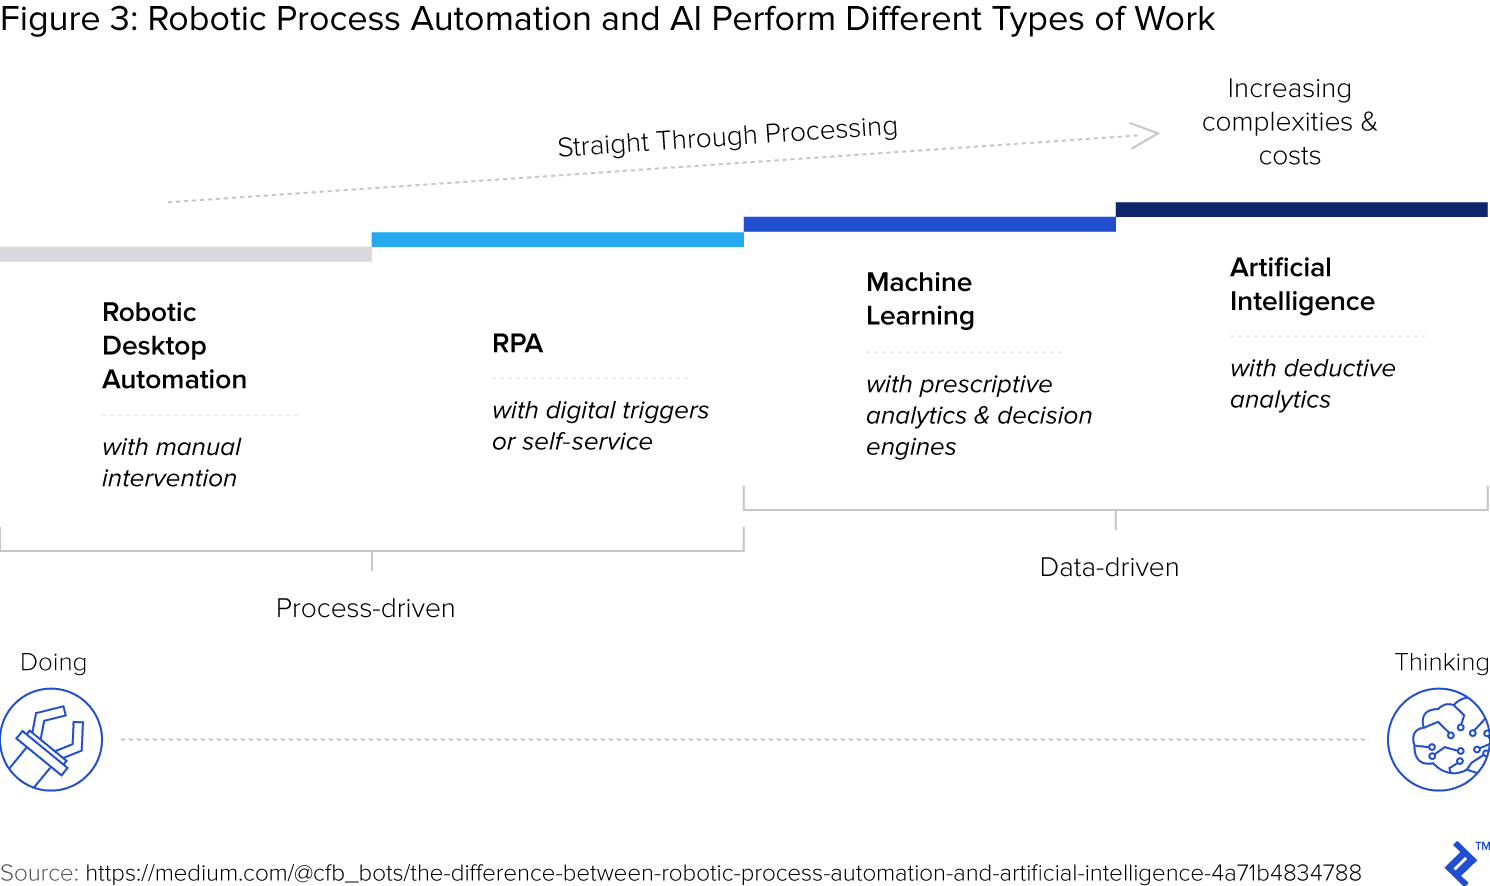 Comparison of robotic desktop automation, RPA, machine learning, and artificial intelligence.